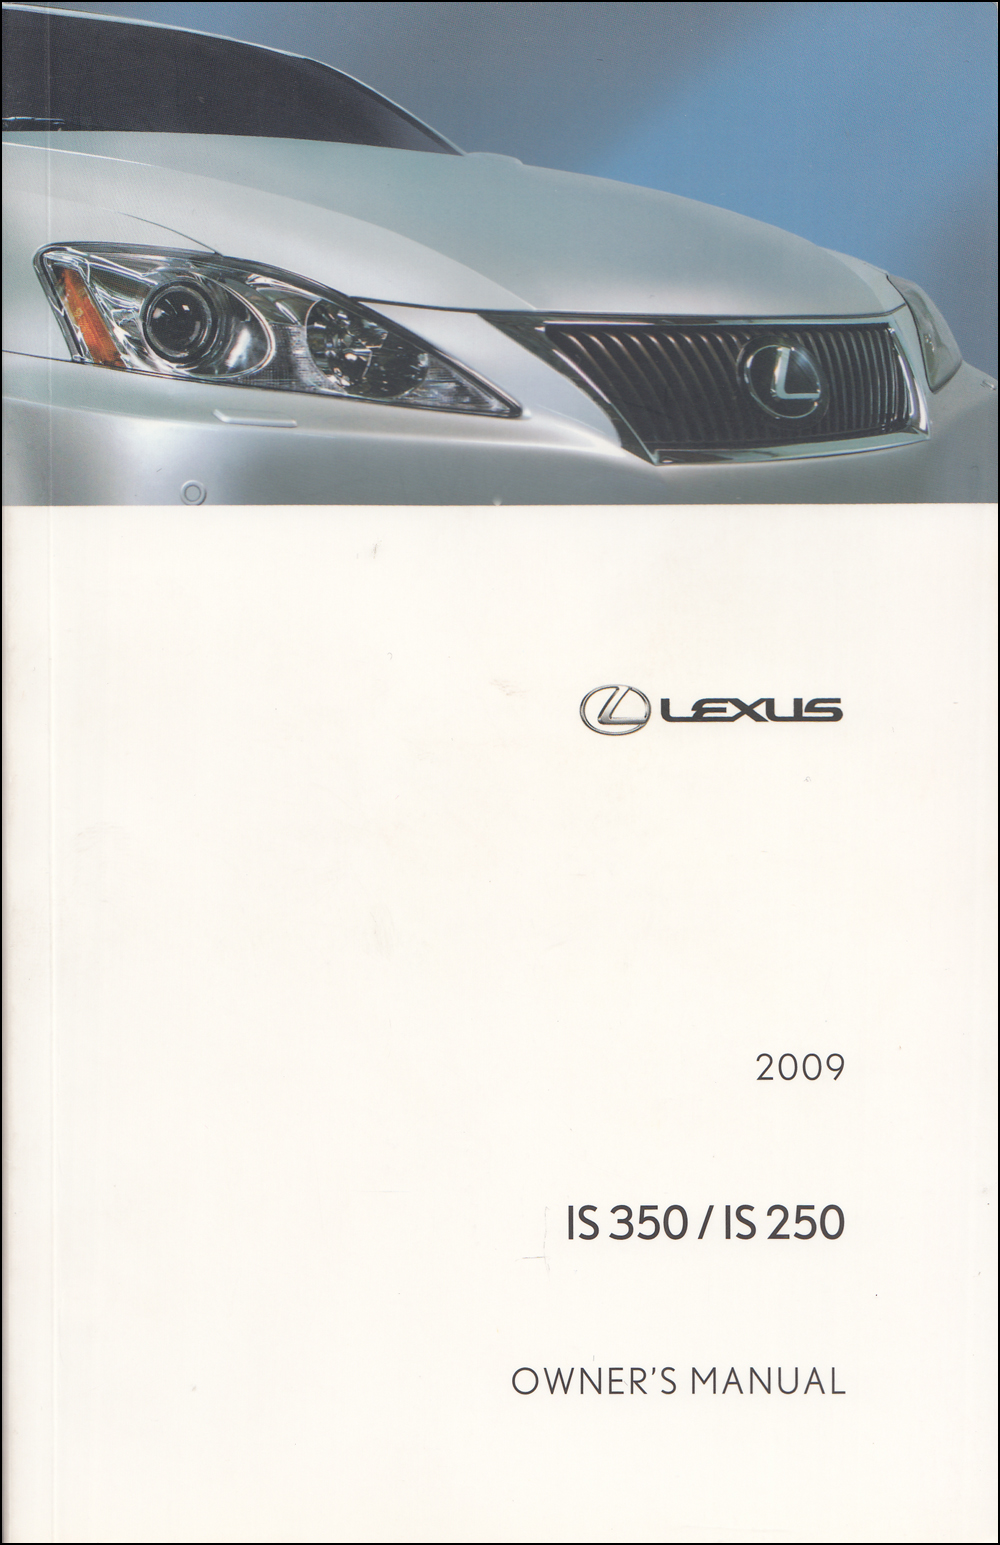 2009 Lexus IS 350 / IS 250 Owner's Manual Original